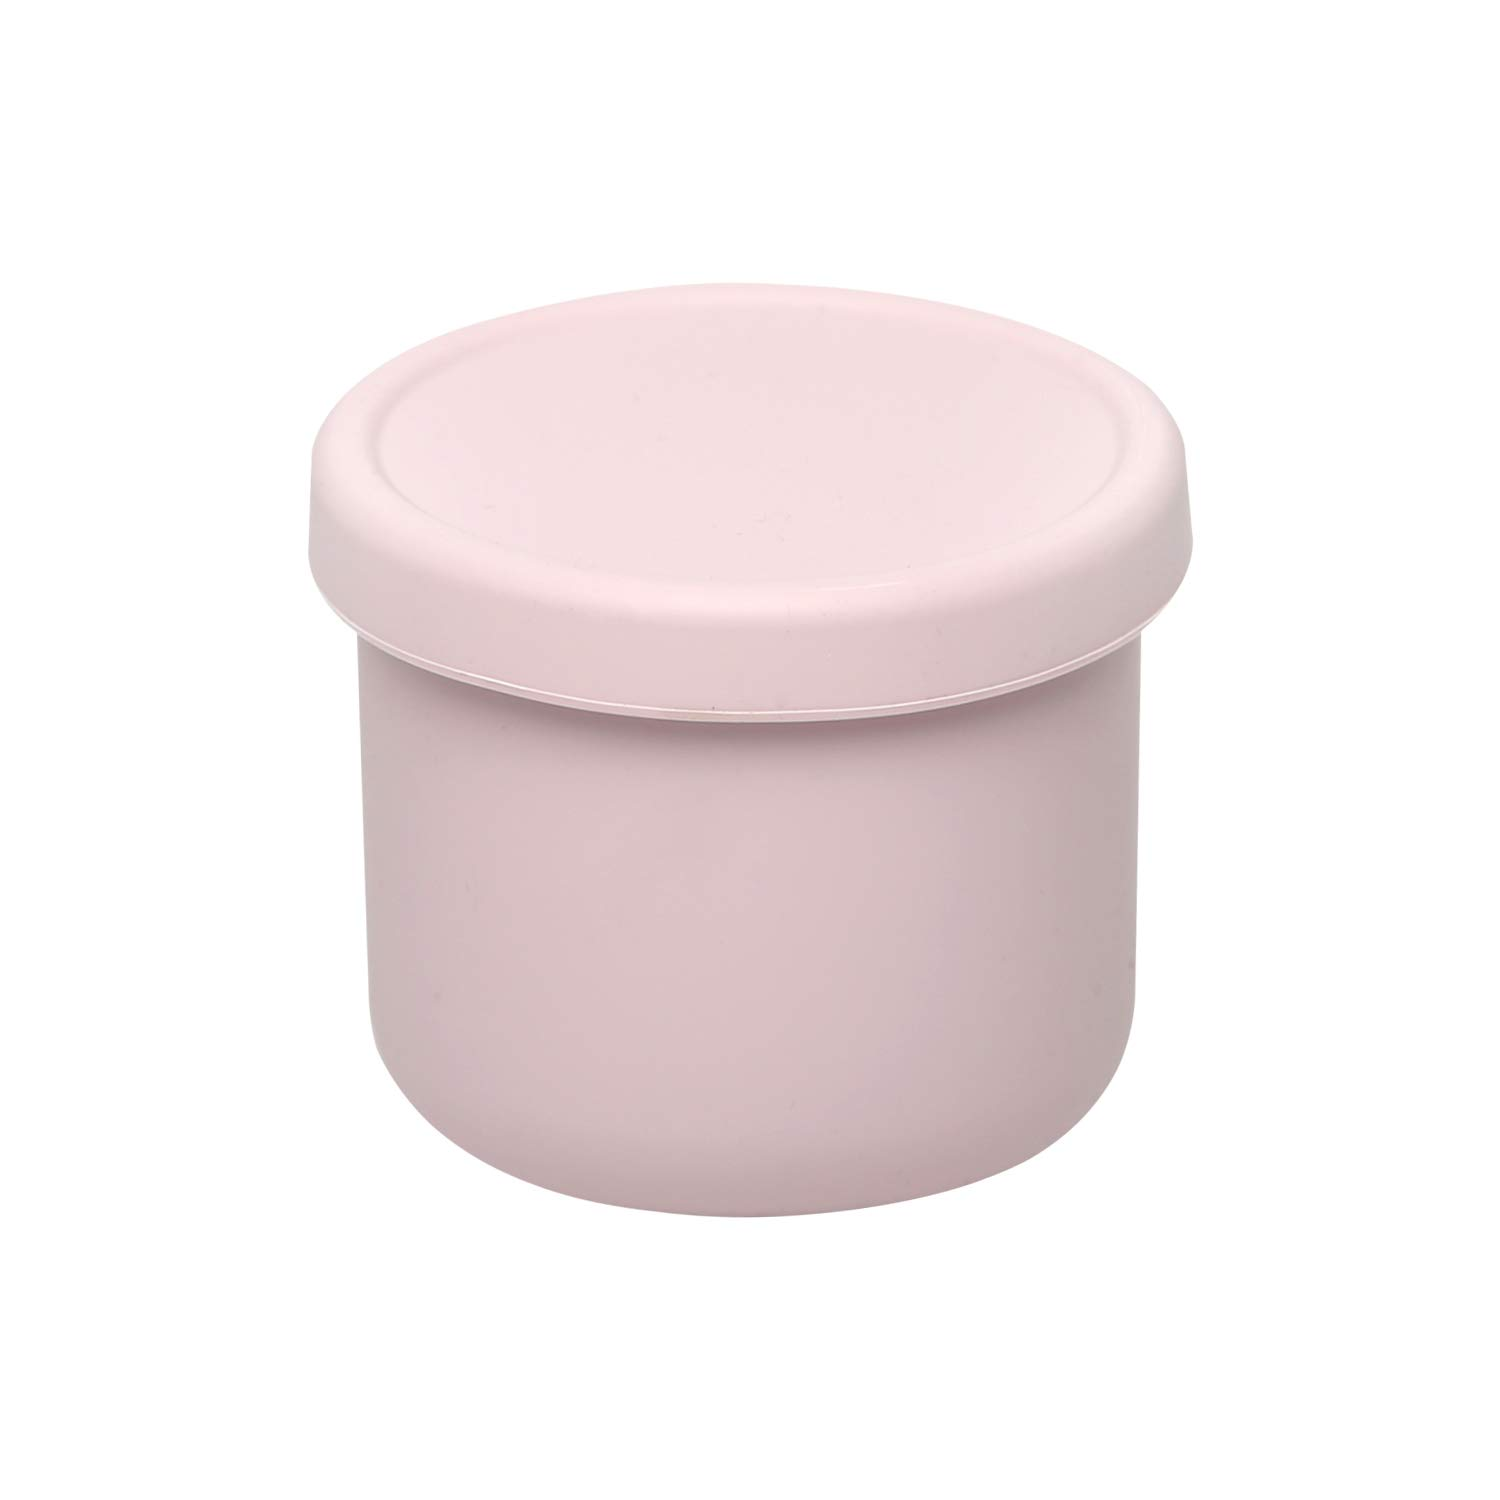 Silicone Baby Food Storage Freezer Containers with Lids |BPA-Free Airtight Leak-Proof Baby Food Jars | Dishwasher, Microwave, Refrigerator Safe,8.45OZ,Pink